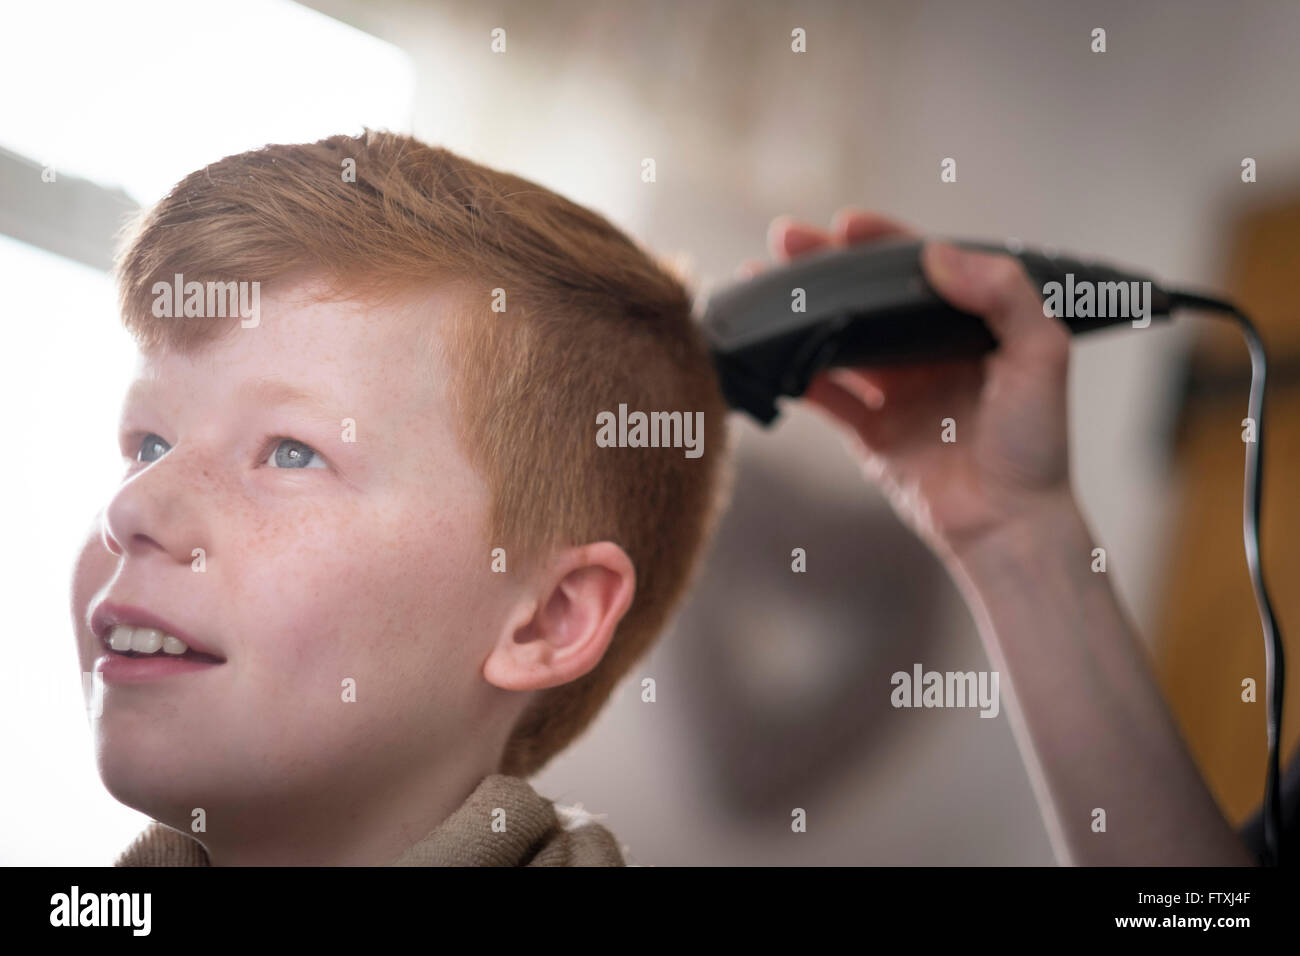 A boy having his hair cut with clippers and scissors. - Stock Image